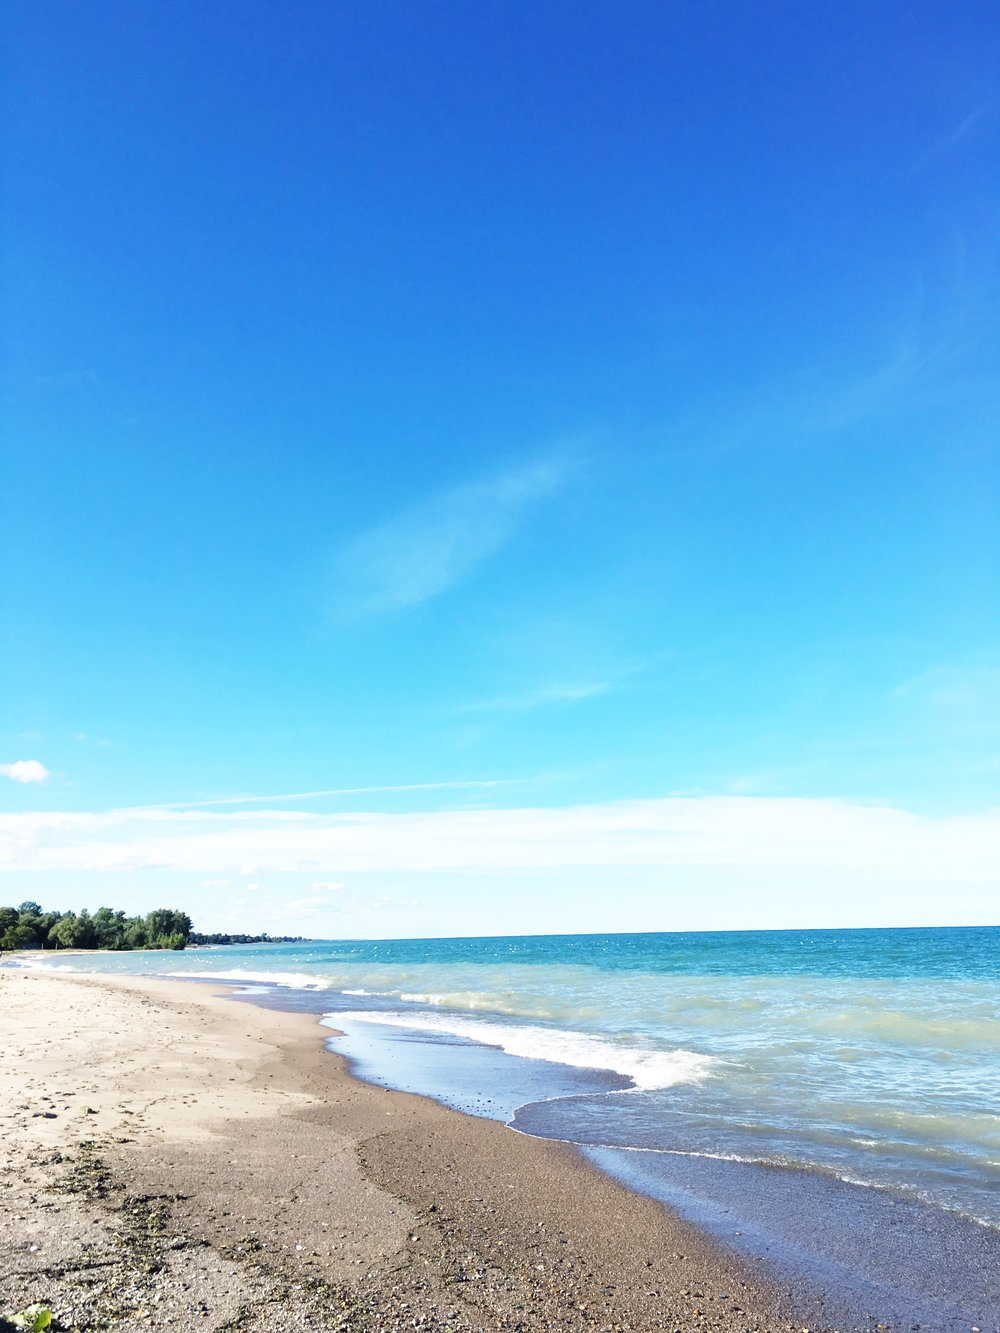 I got to visit Lake Huron for the first time on Sunday! We weren't there very long, but I loved being by the water and hearing the sound of the waves crash on the shore.